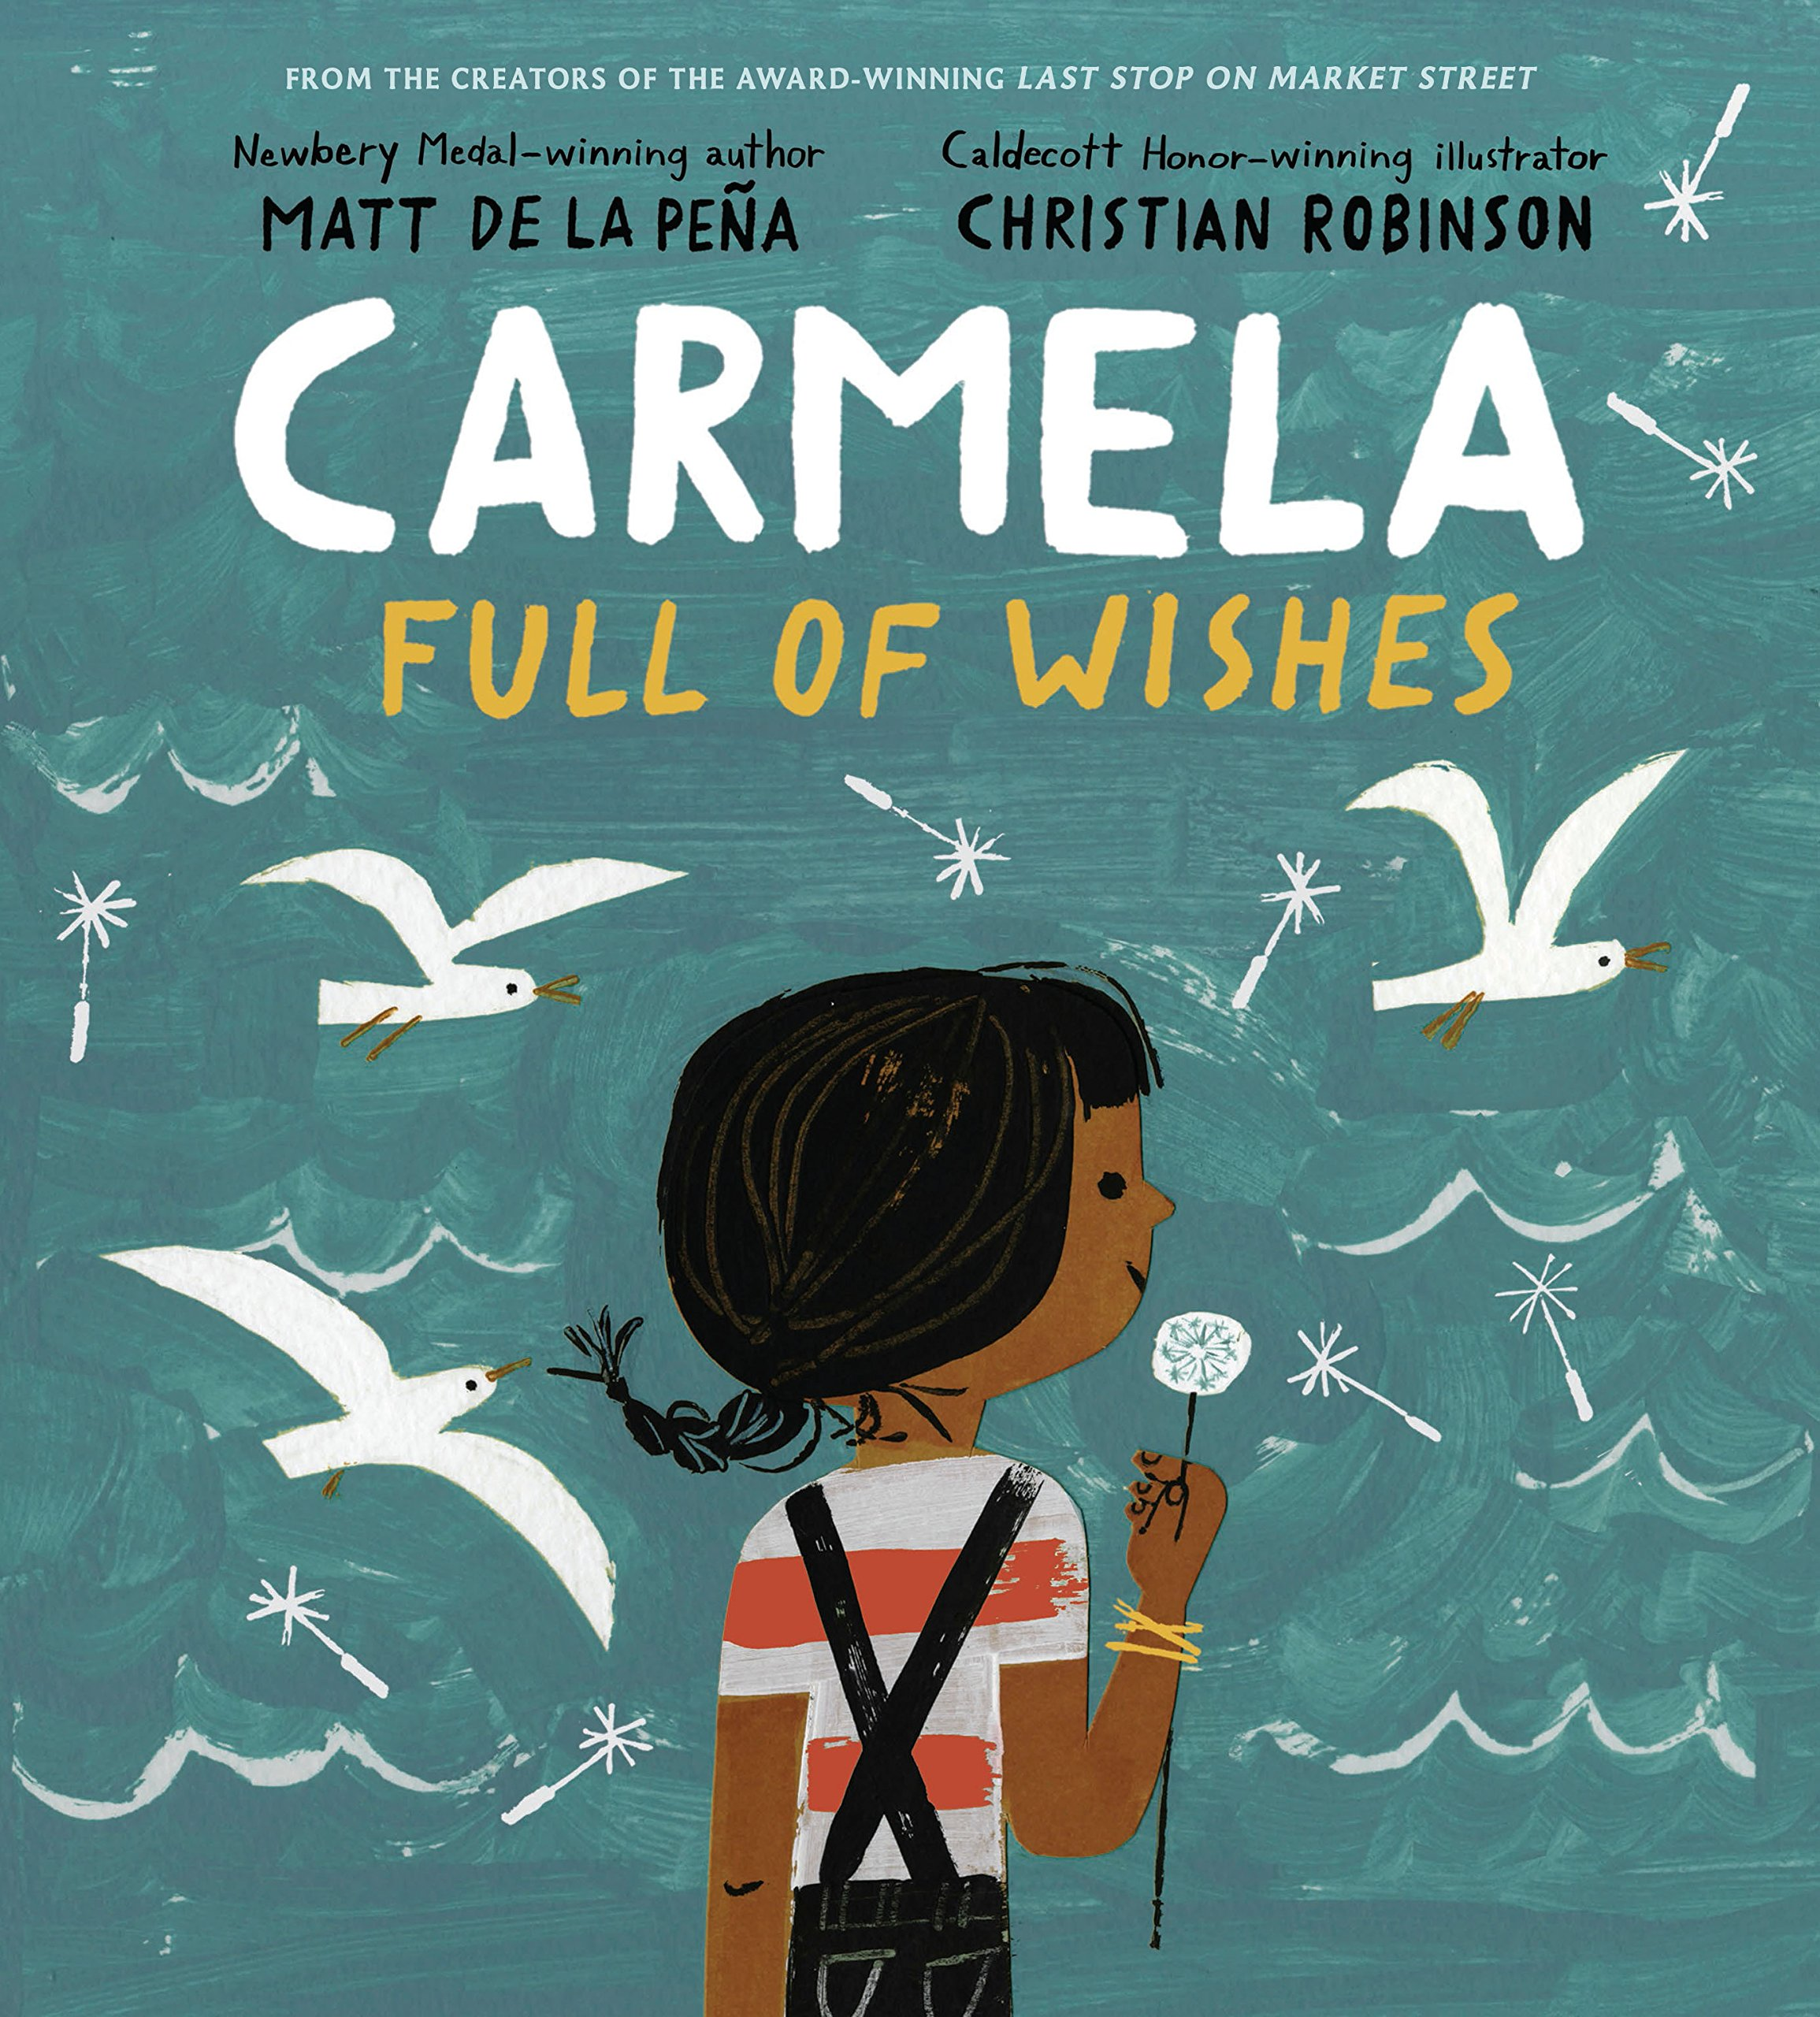 When Carmela wakes up on her birthday, her wish has already come true–she's finally old enough to join her big brother as he does the family errands. Together, they travel through their neighborhood, past the crowded bus stop, the fenced-off repair shop, and the panadería, until they arrive at the Laundromat, where Carmela finds a lone dandelion growing in the pavement. But before she can blow its white fluff away, her brother tells her she has to make a wish. If only she can think of just the right wish to make . . .